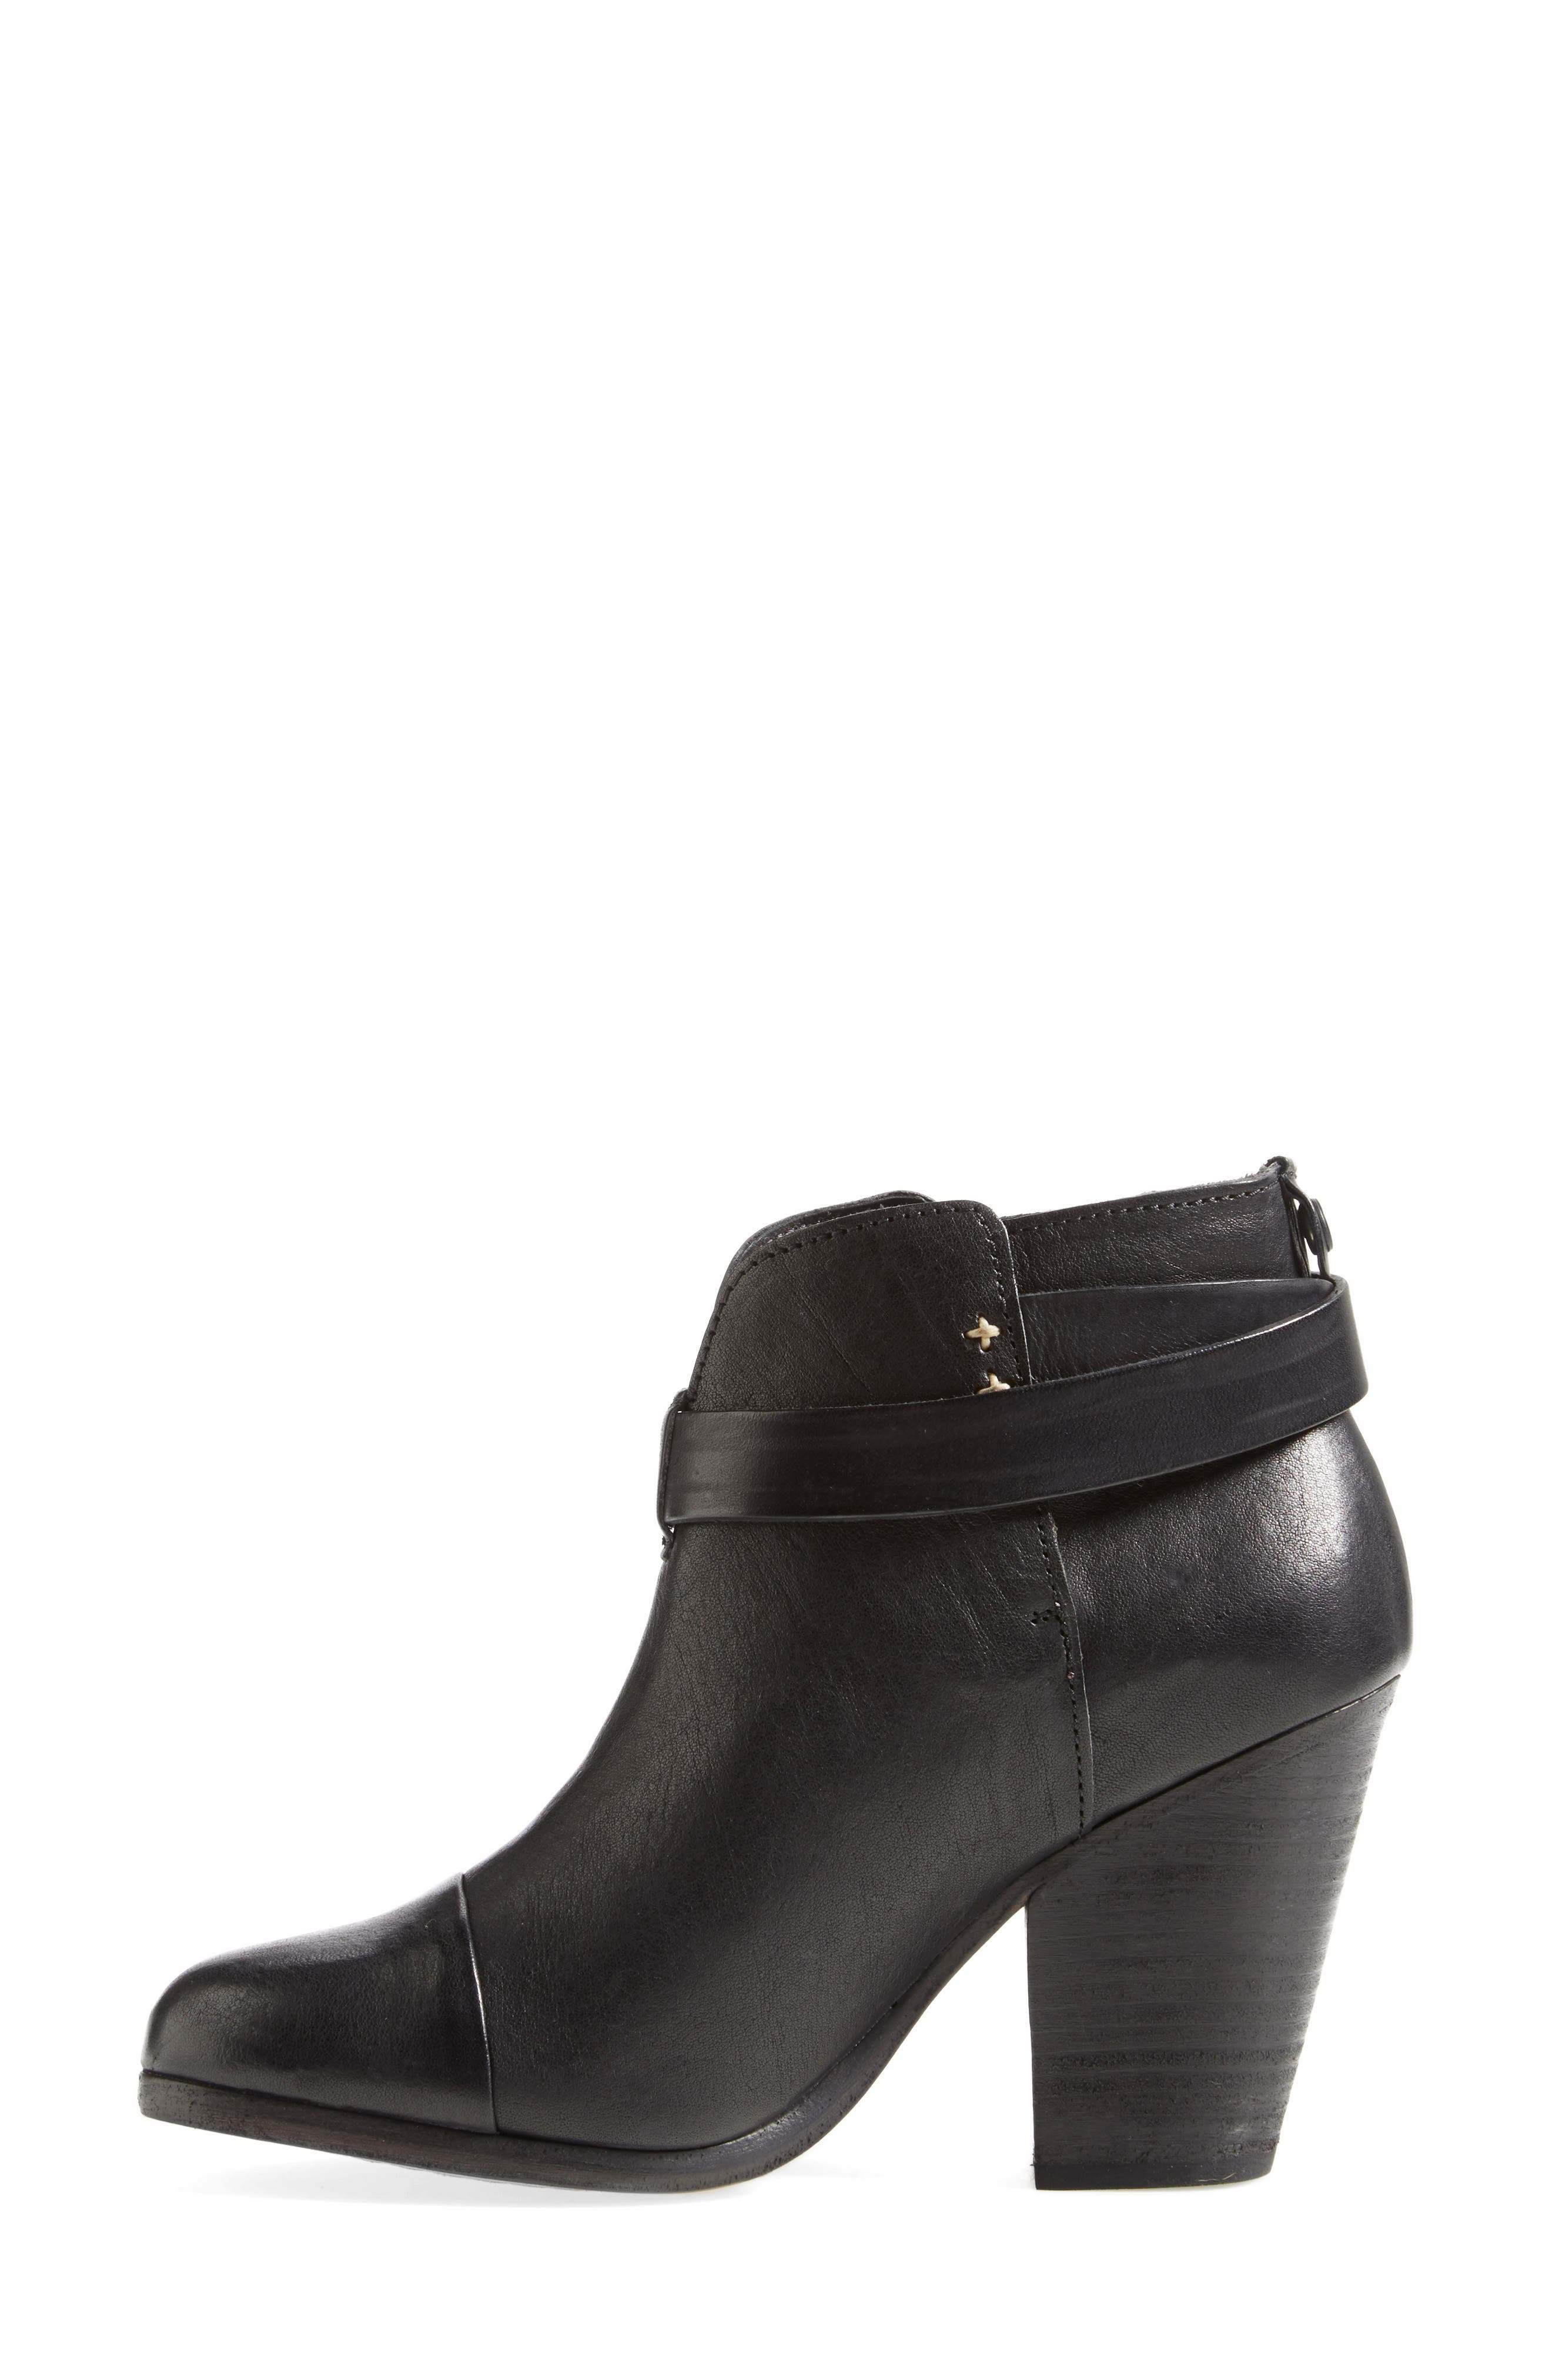 RAG & BONE, 'Harrow' Leather Boot, Alternate thumbnail 2, color, BLACK